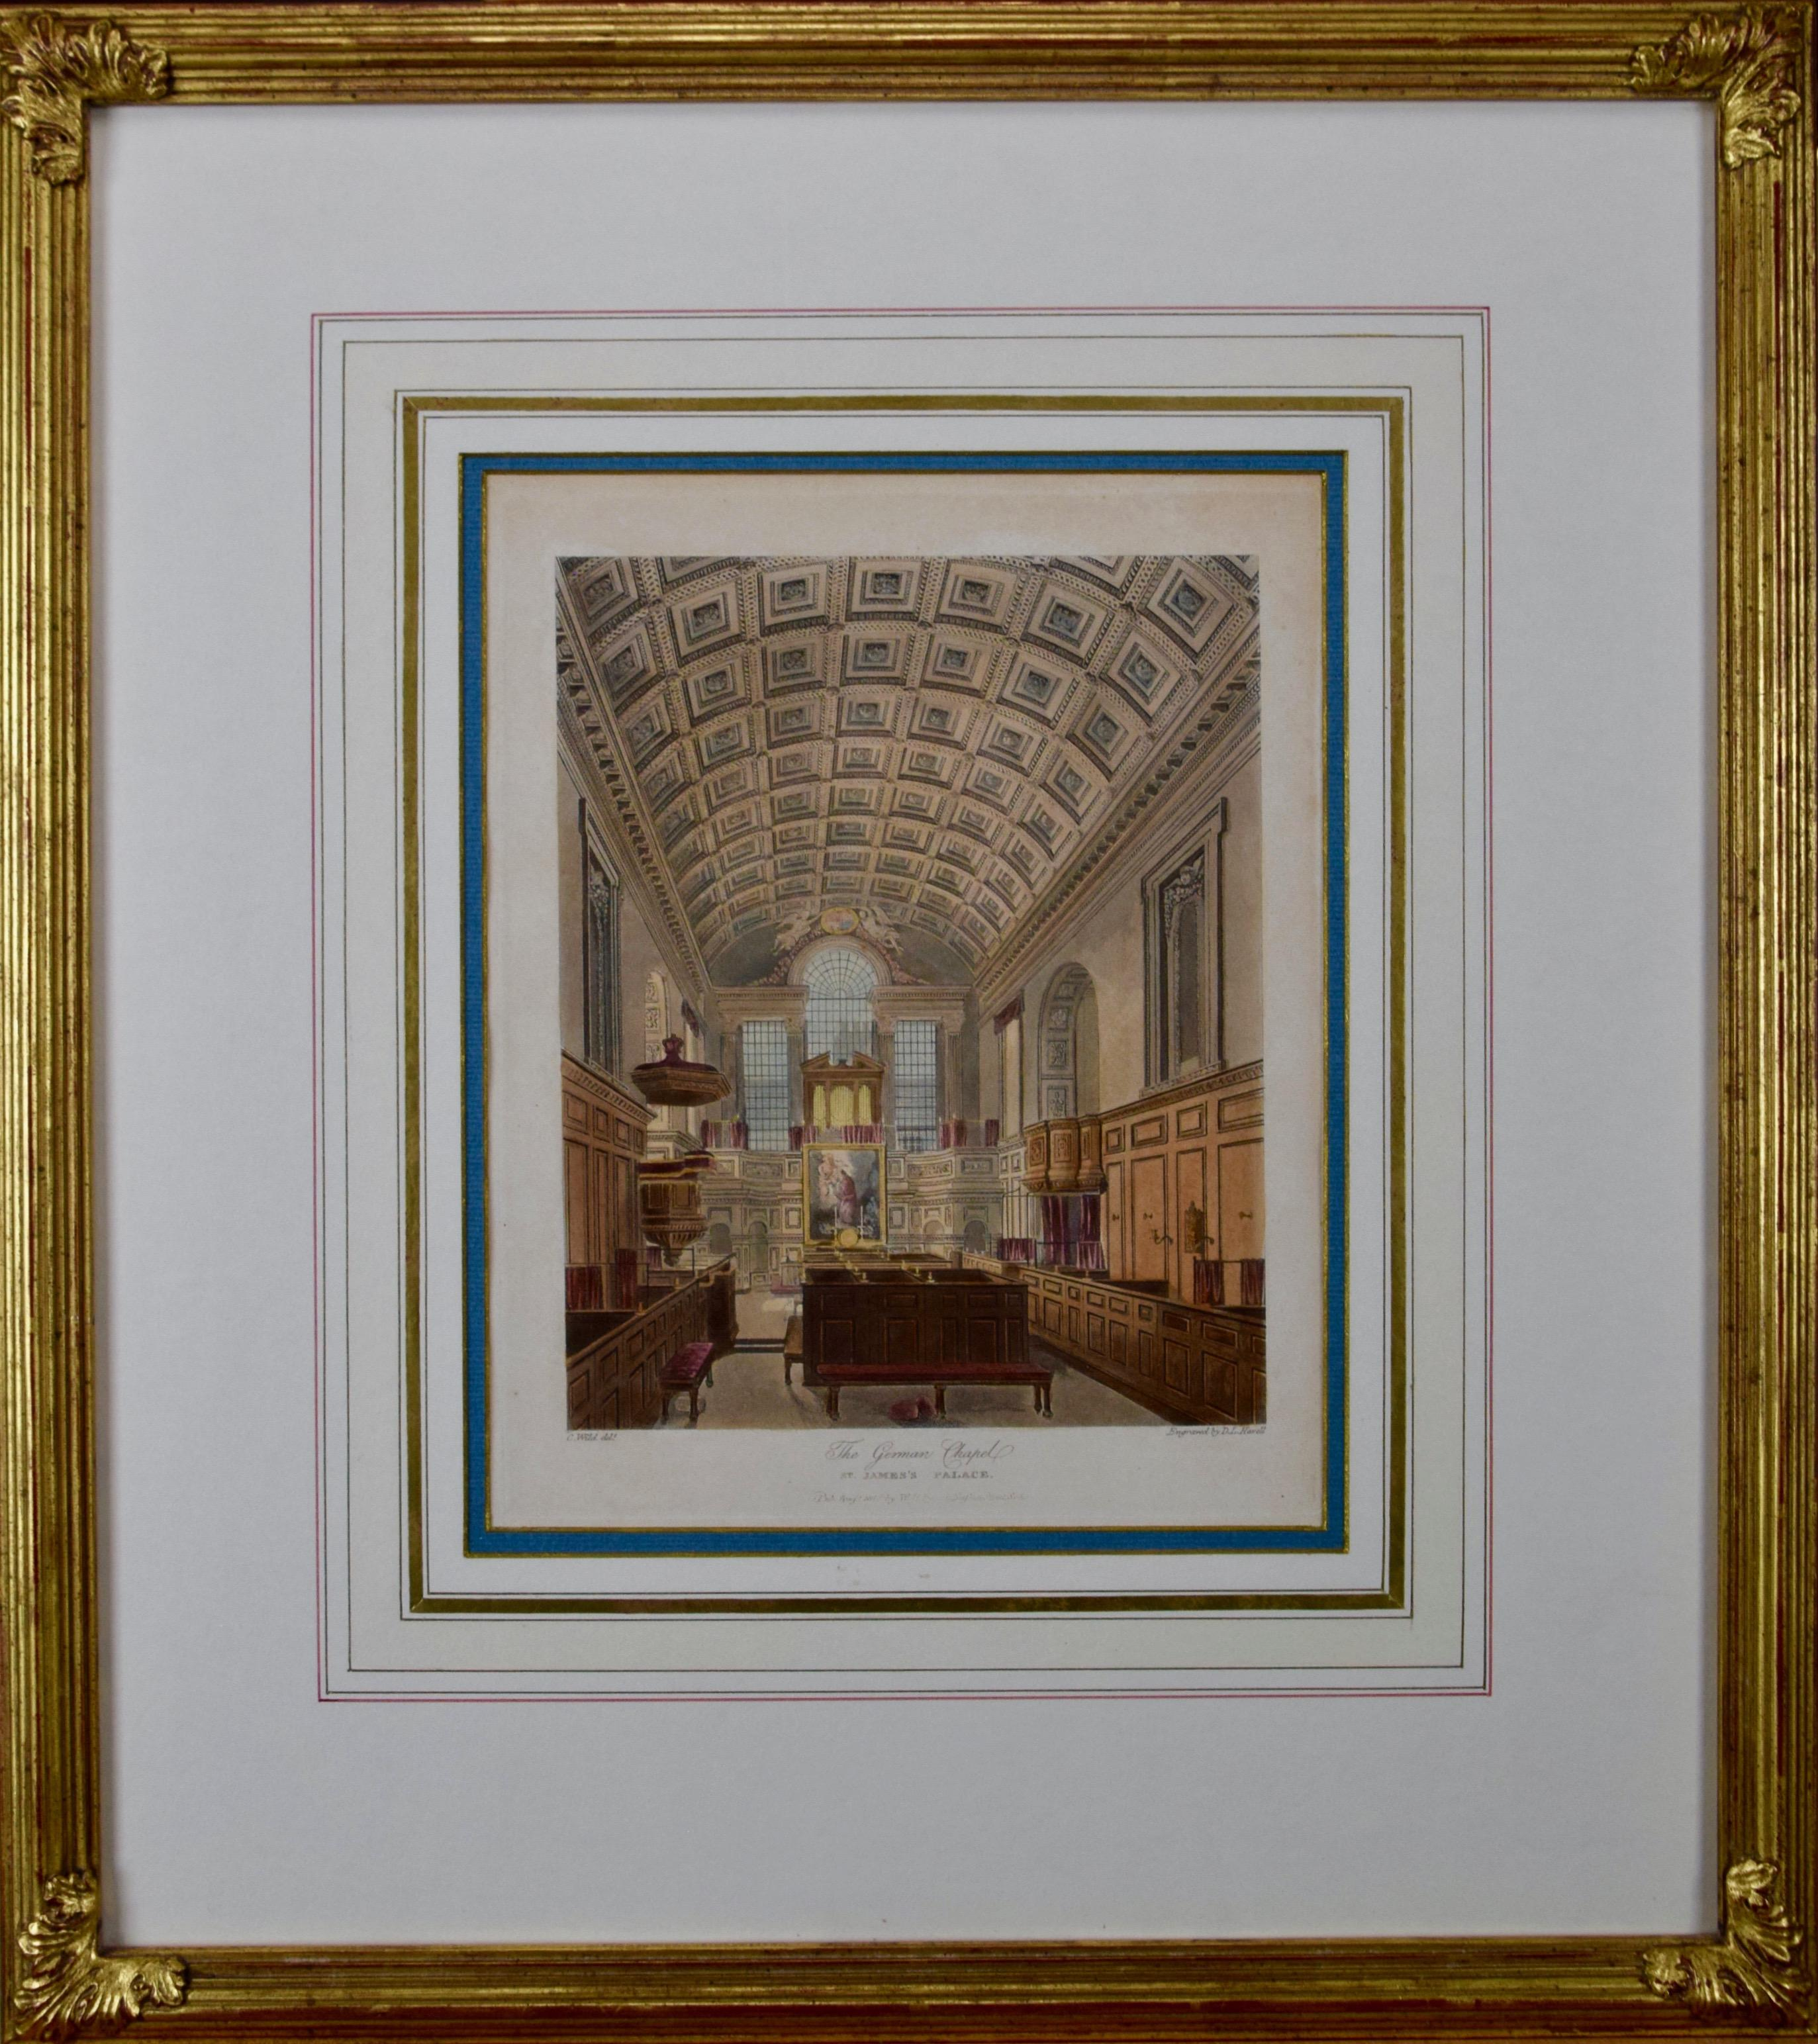 The German Chapel in St. James Palace, A 19th Century Hand Colored Engraving